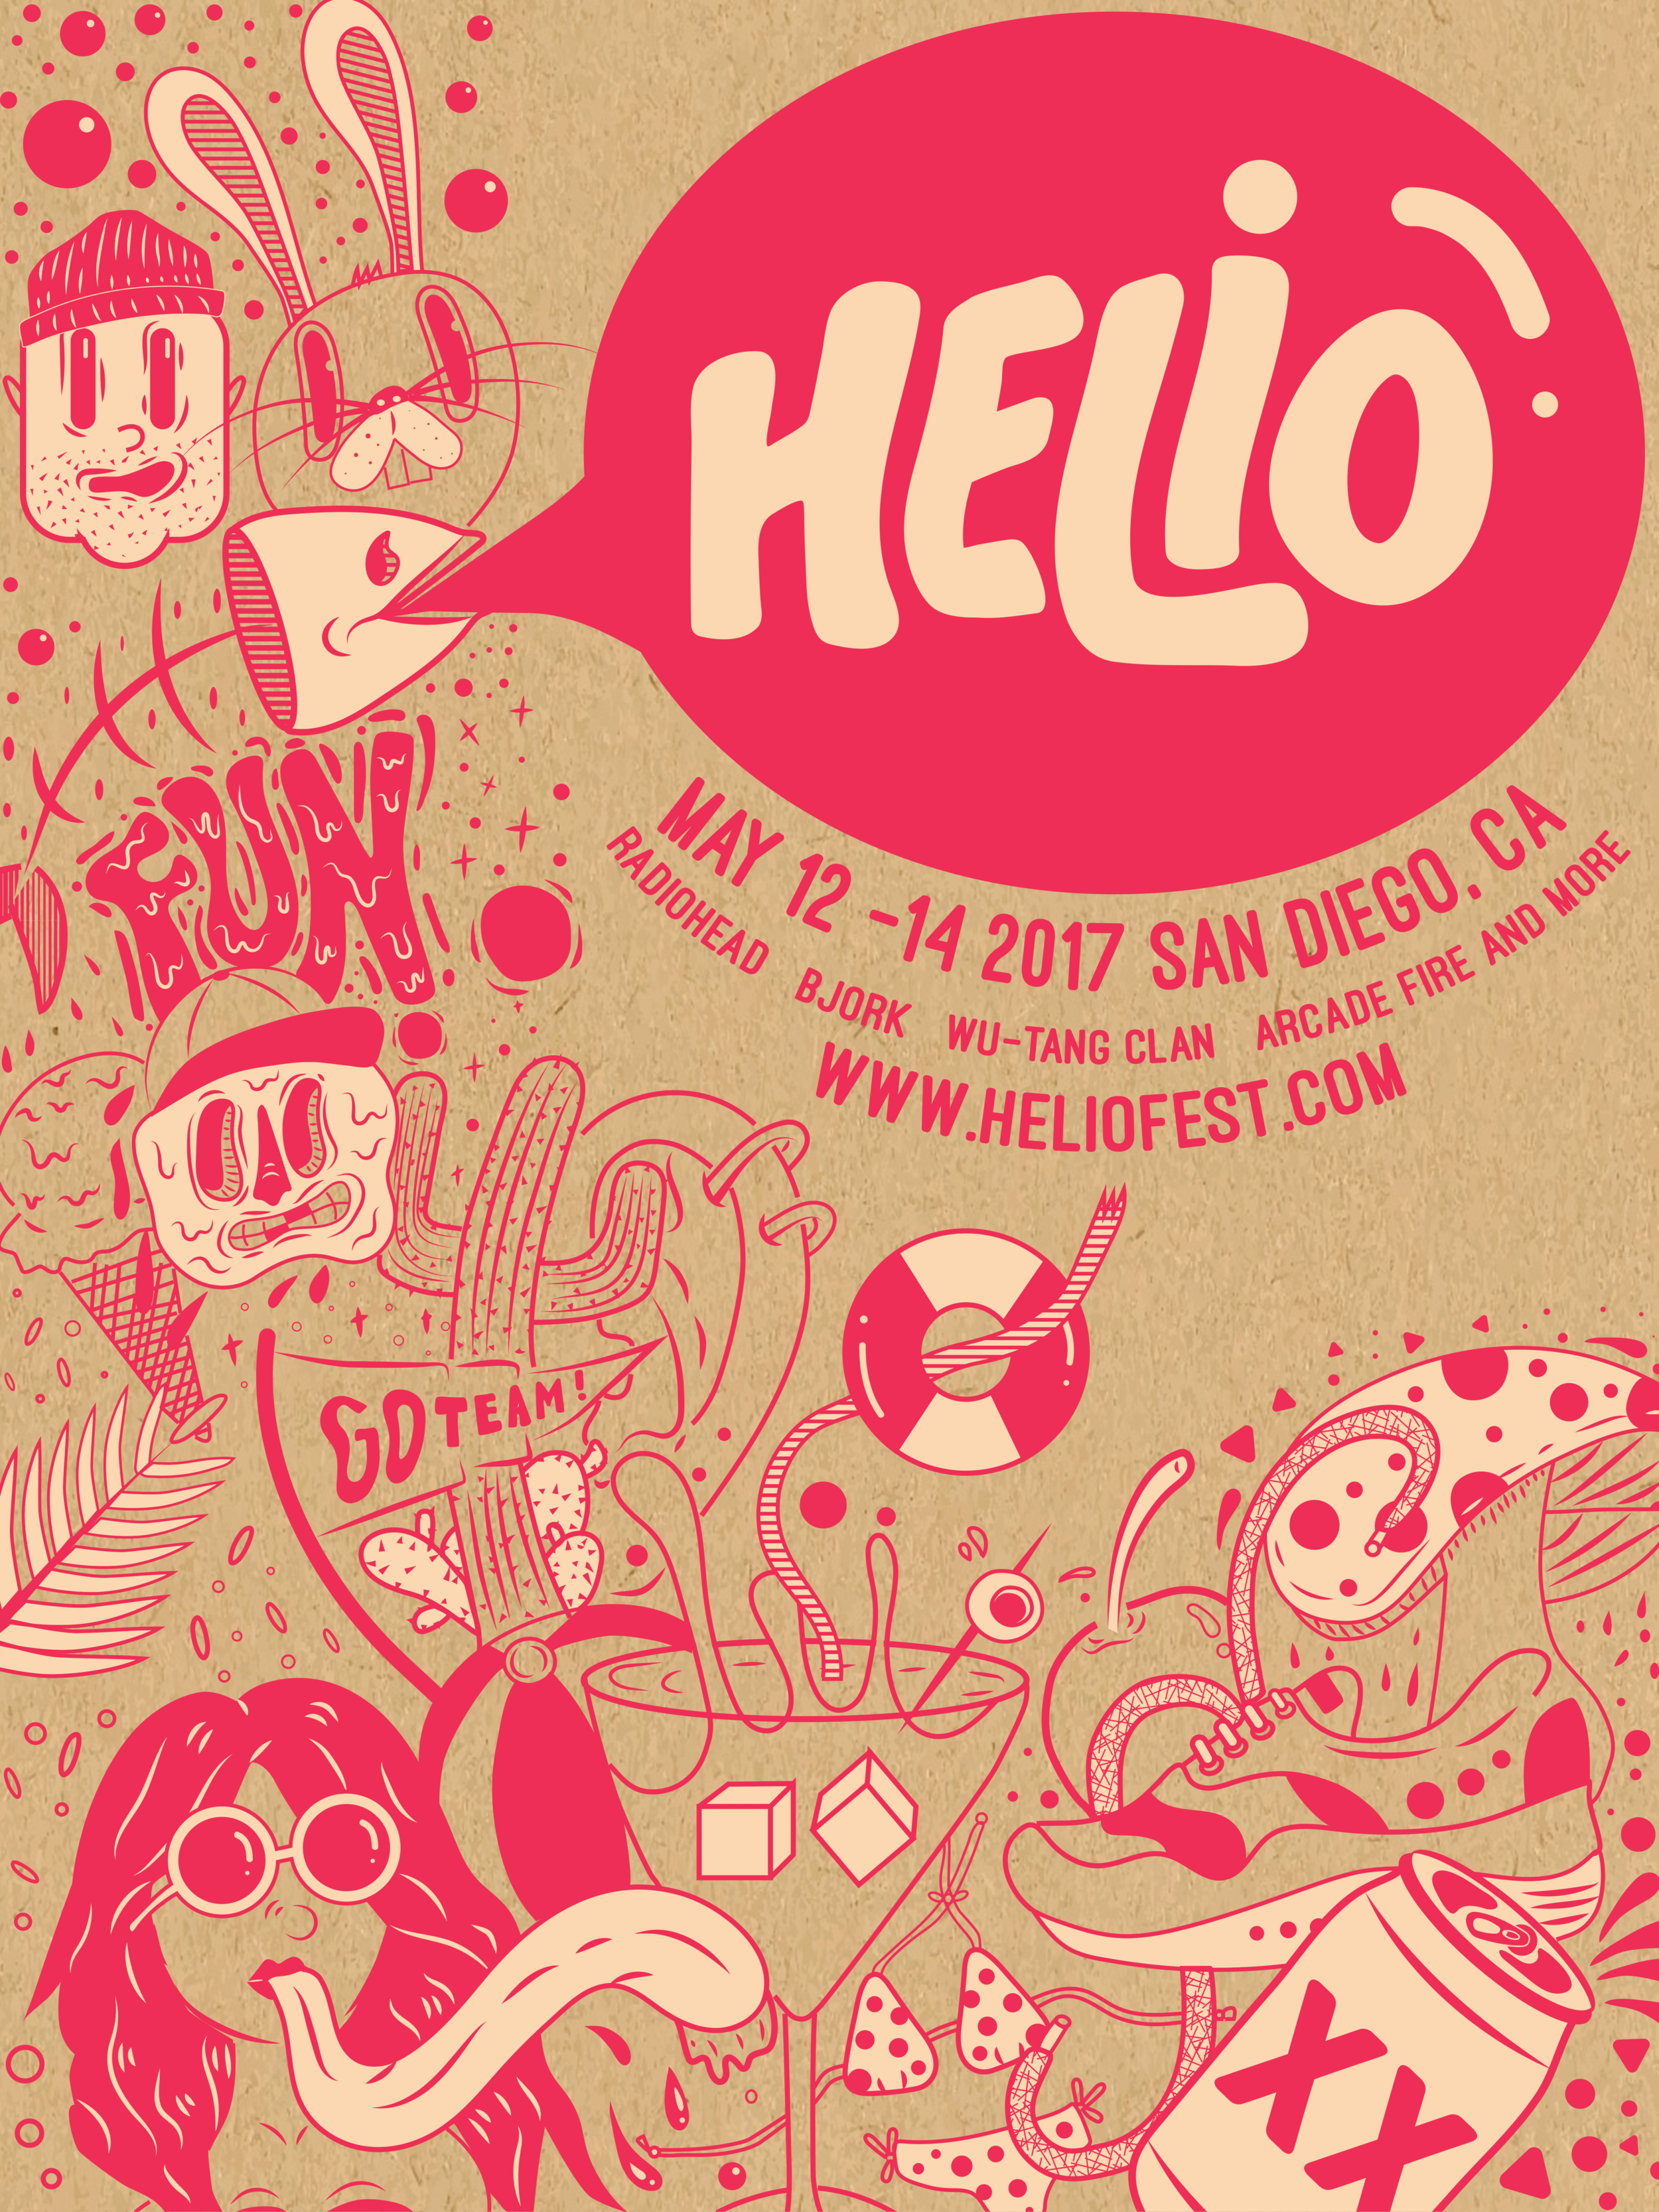 Helio Music and Art Festival